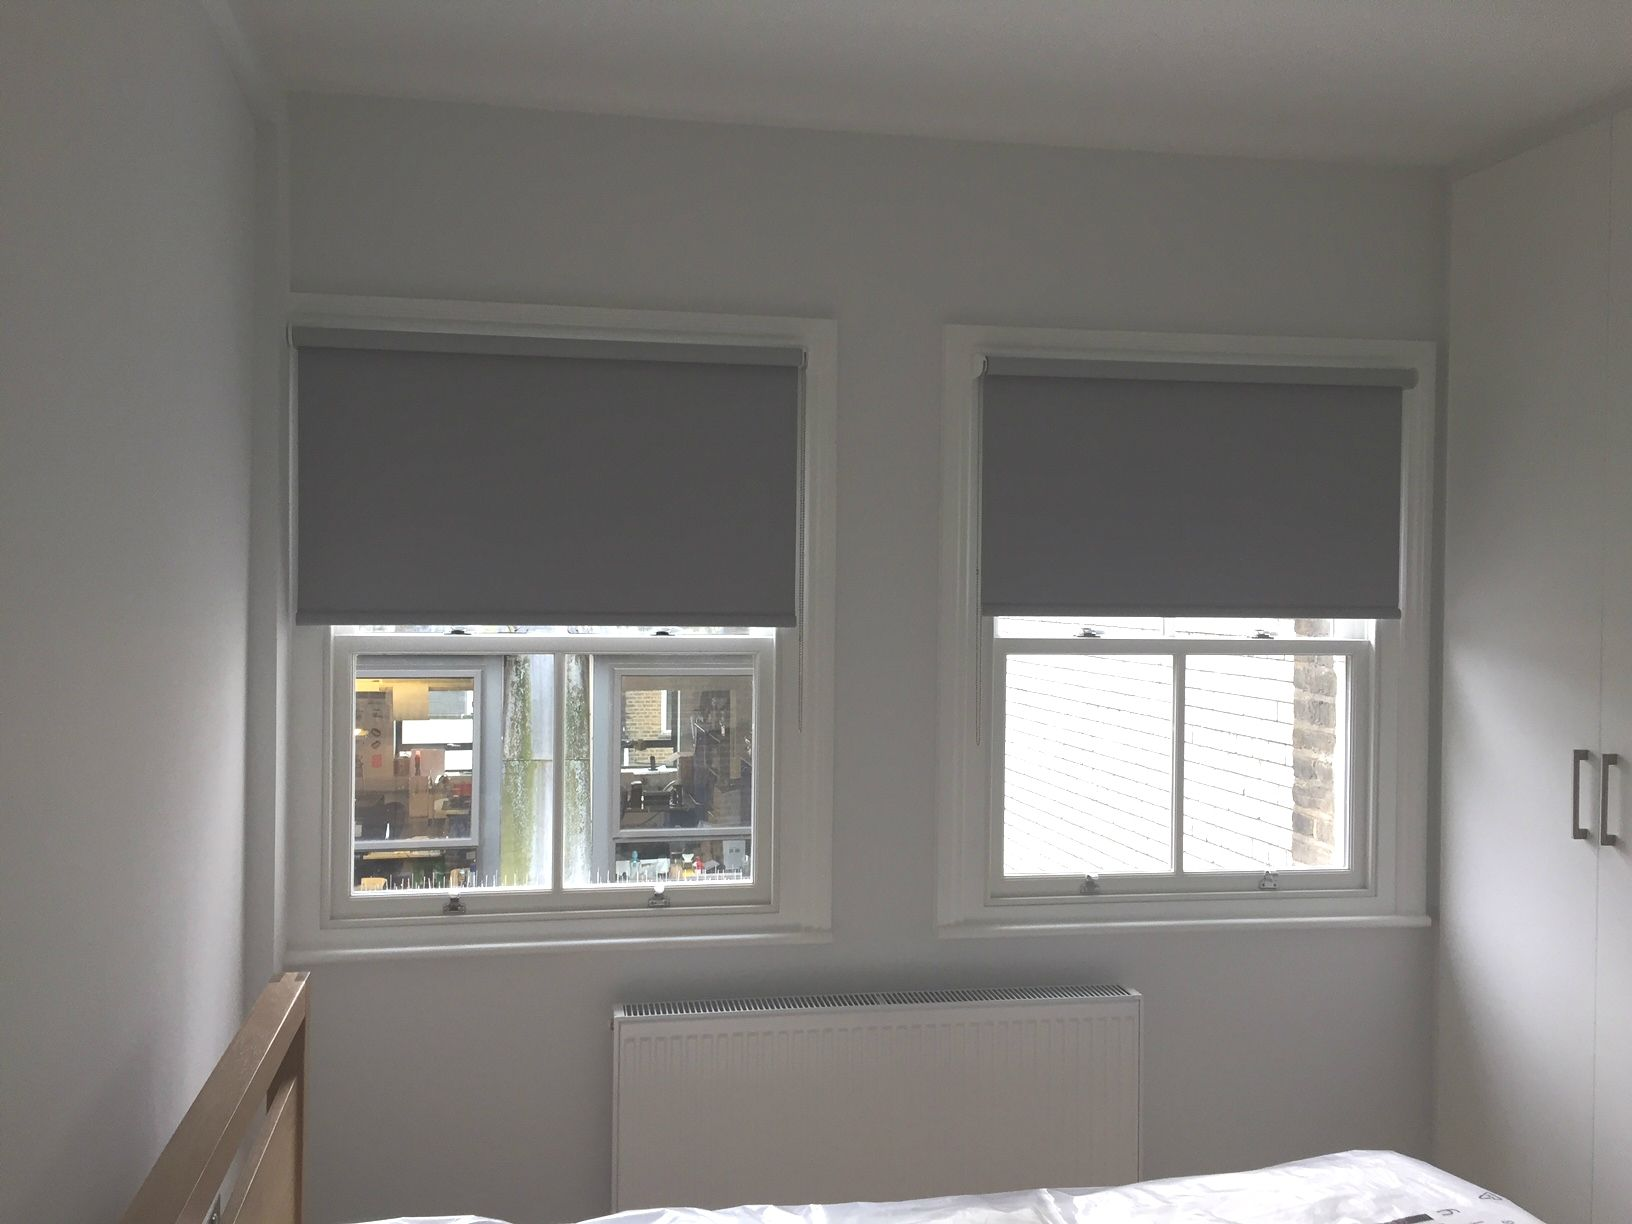 waterproof shade shutters over curtains bathroom window ideas blinds splendid the houzz tub or treatments for diy modern excellent treatment pinterest